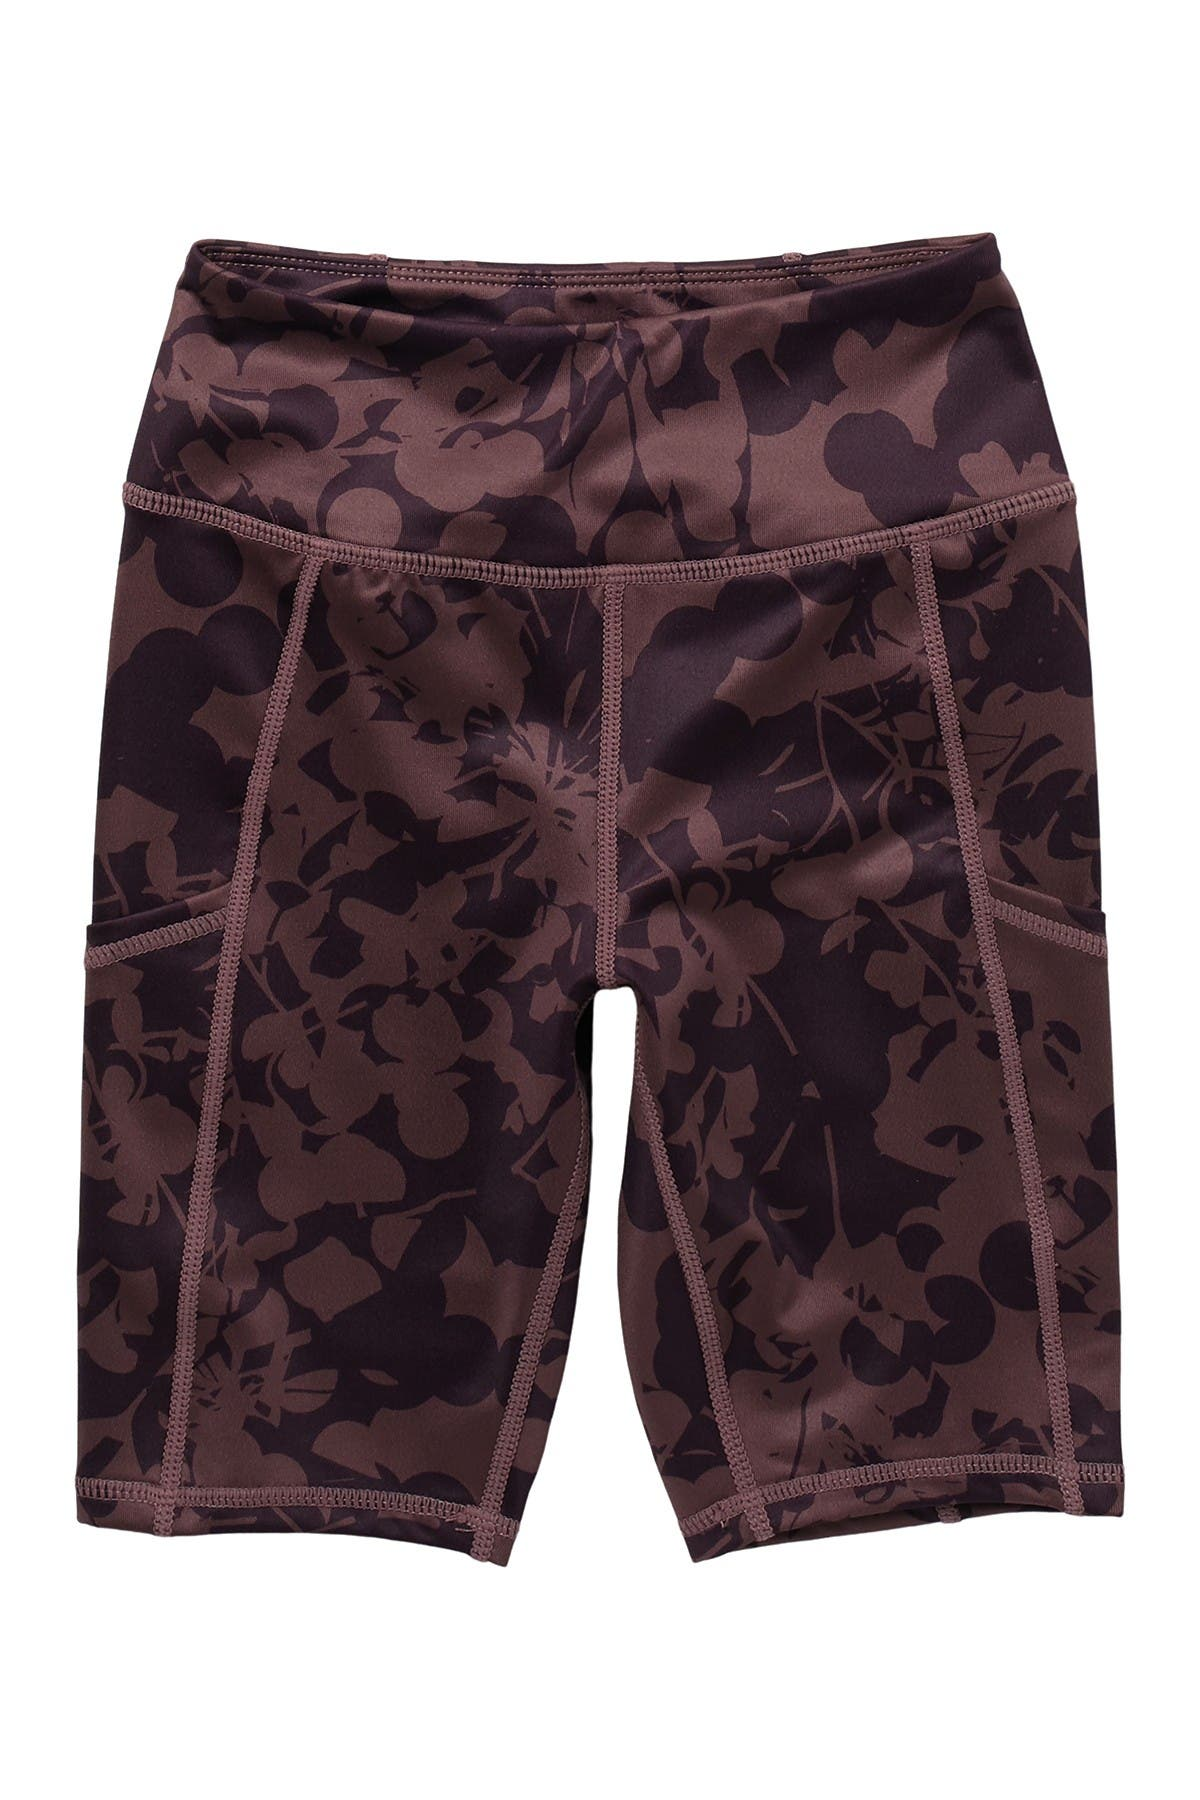 Image of Z by Zella Girl Daily Pocket Camo Print High Waist Bike Shorts